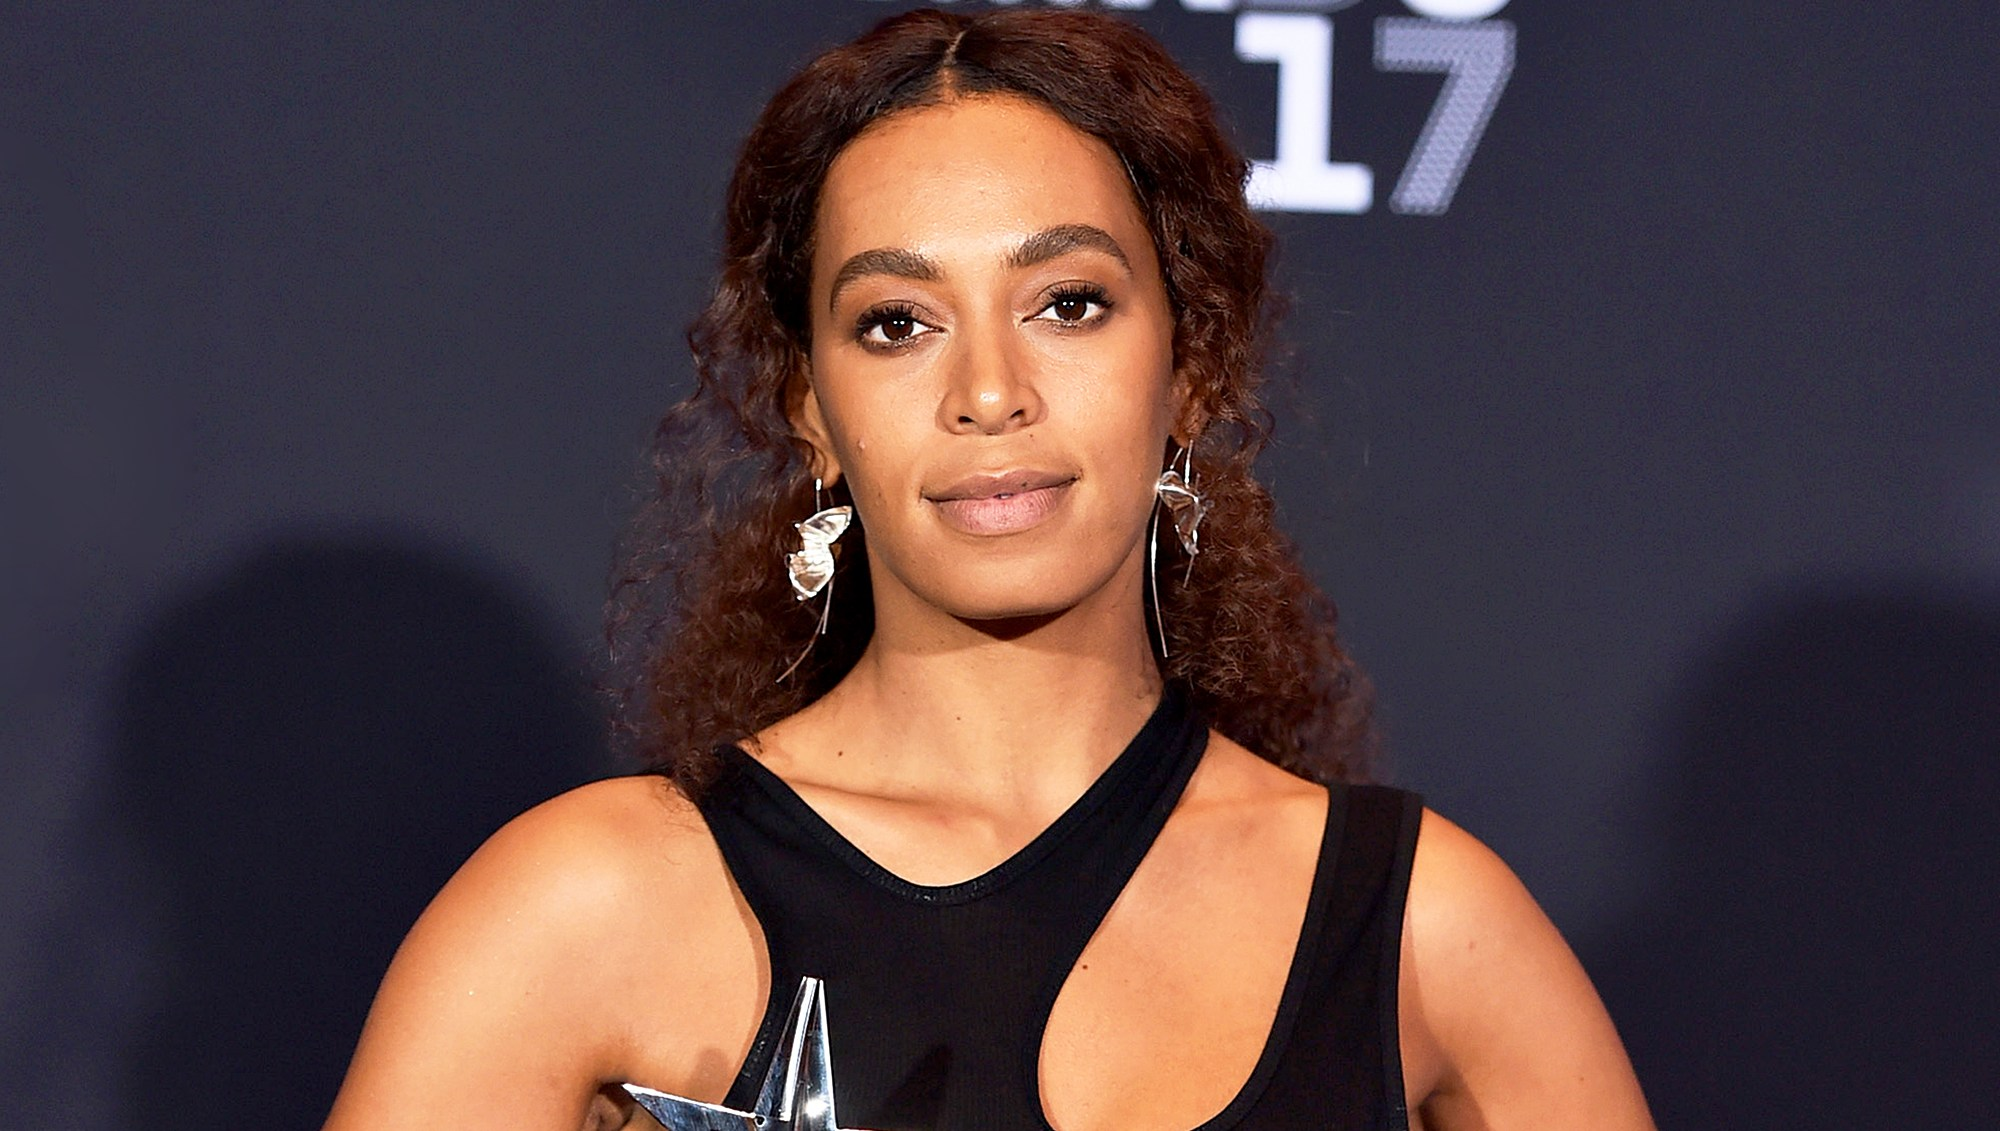 Solange attends the 2017 BET Awards at Microsoft Theater in Los Angeles, California.